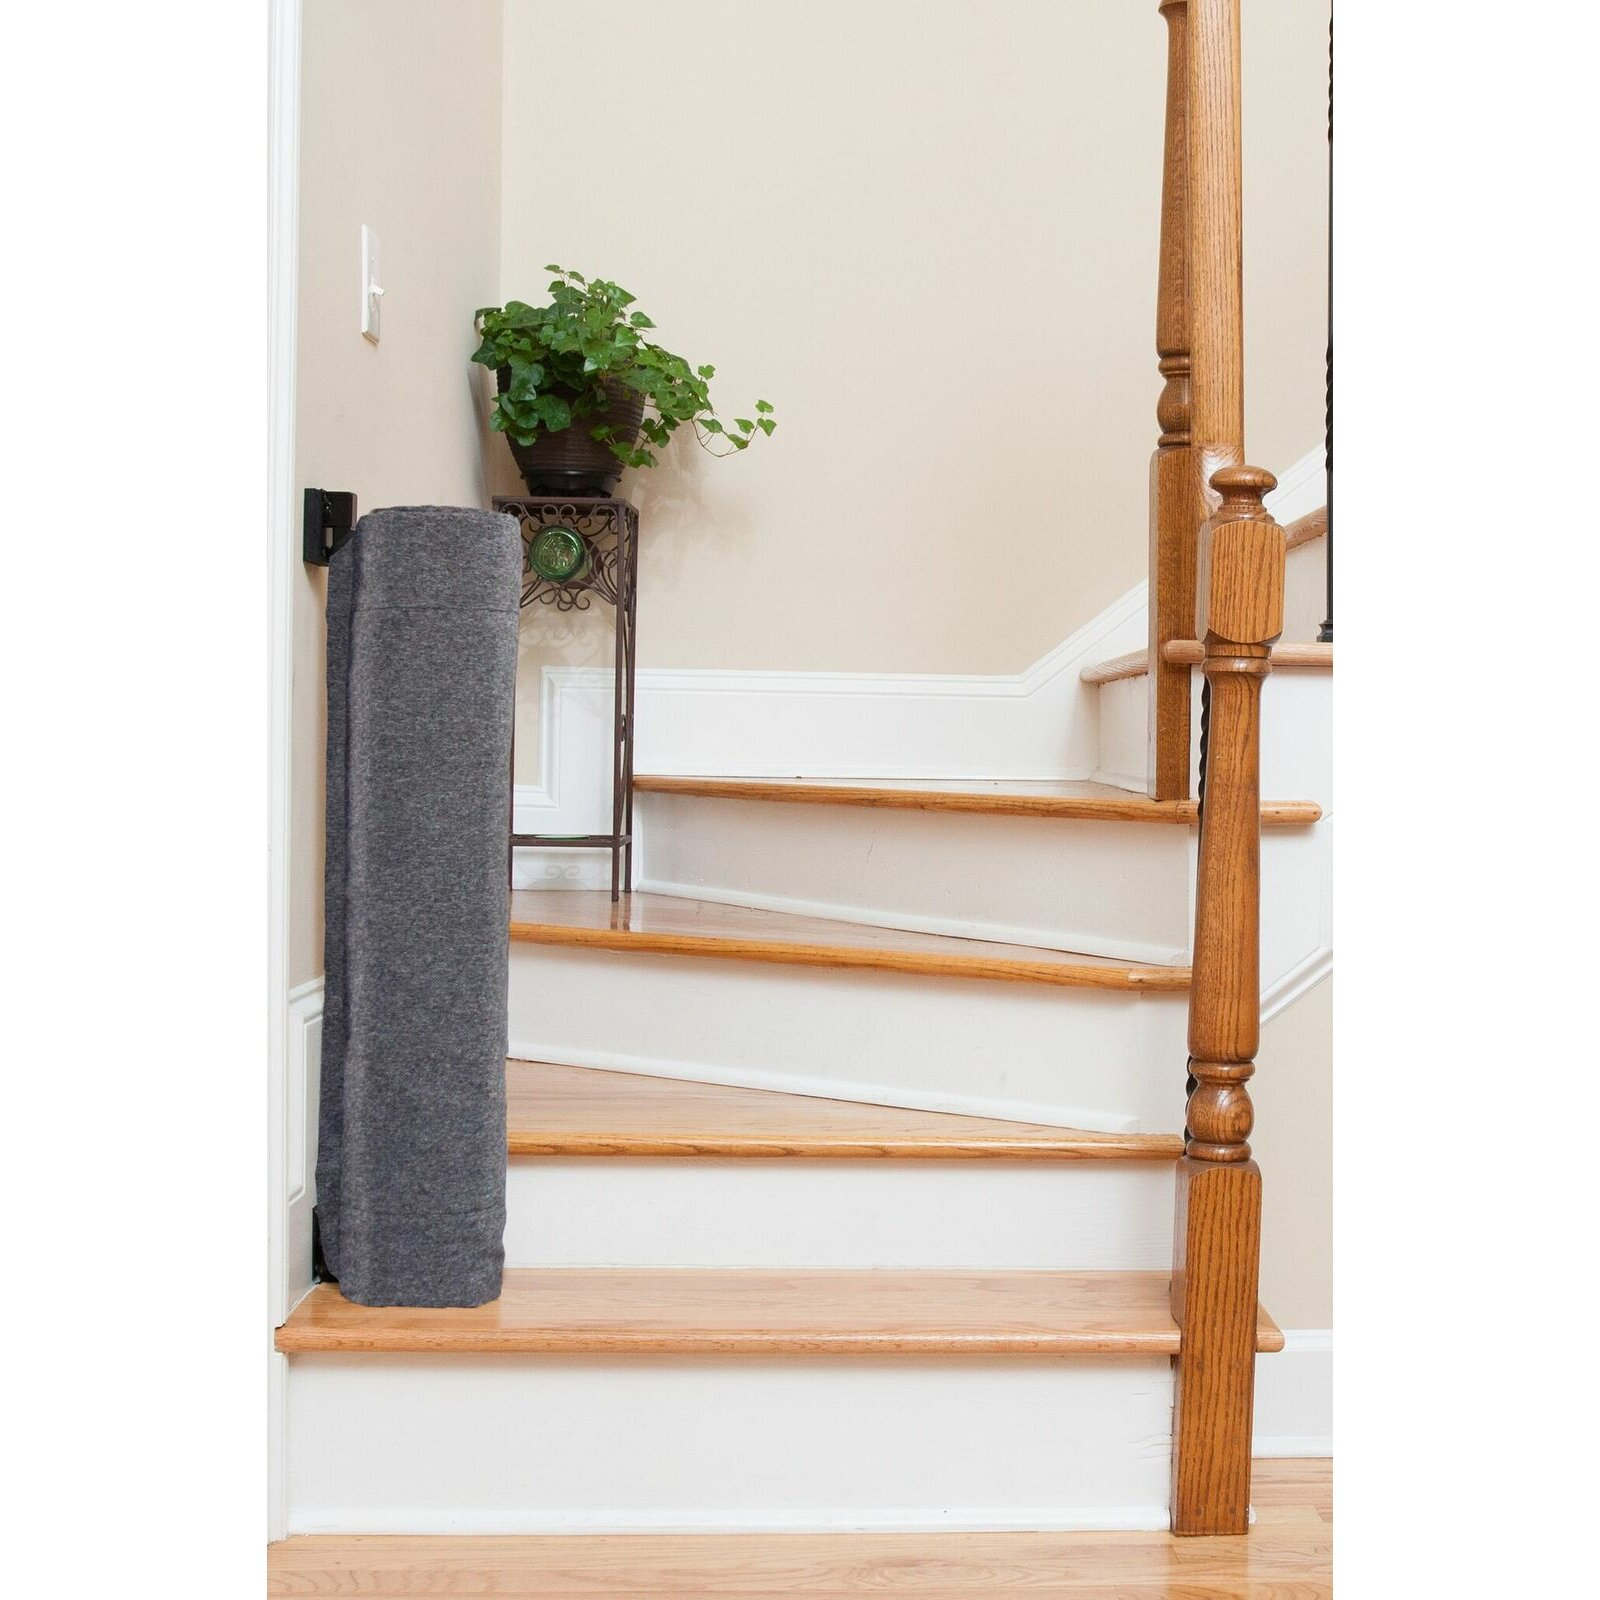 TheStairBarrier Wall To Banister Safety Gate